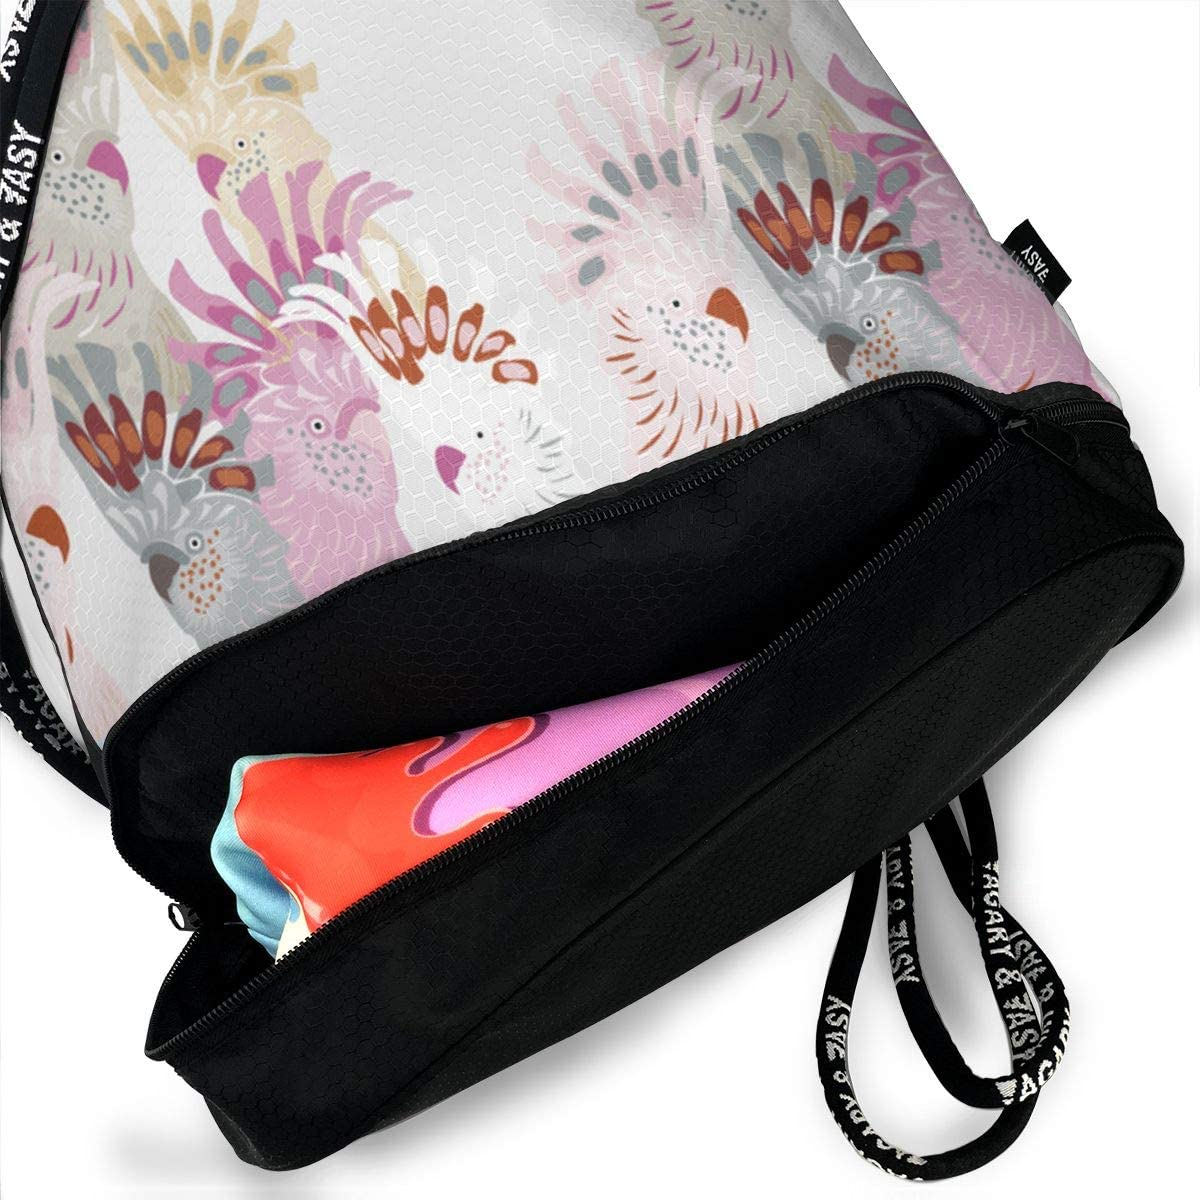 Cockatoos Drawstring Backpack Sports Athletic Gym Cinch Sack String Storage Bags for Hiking Travel Beach